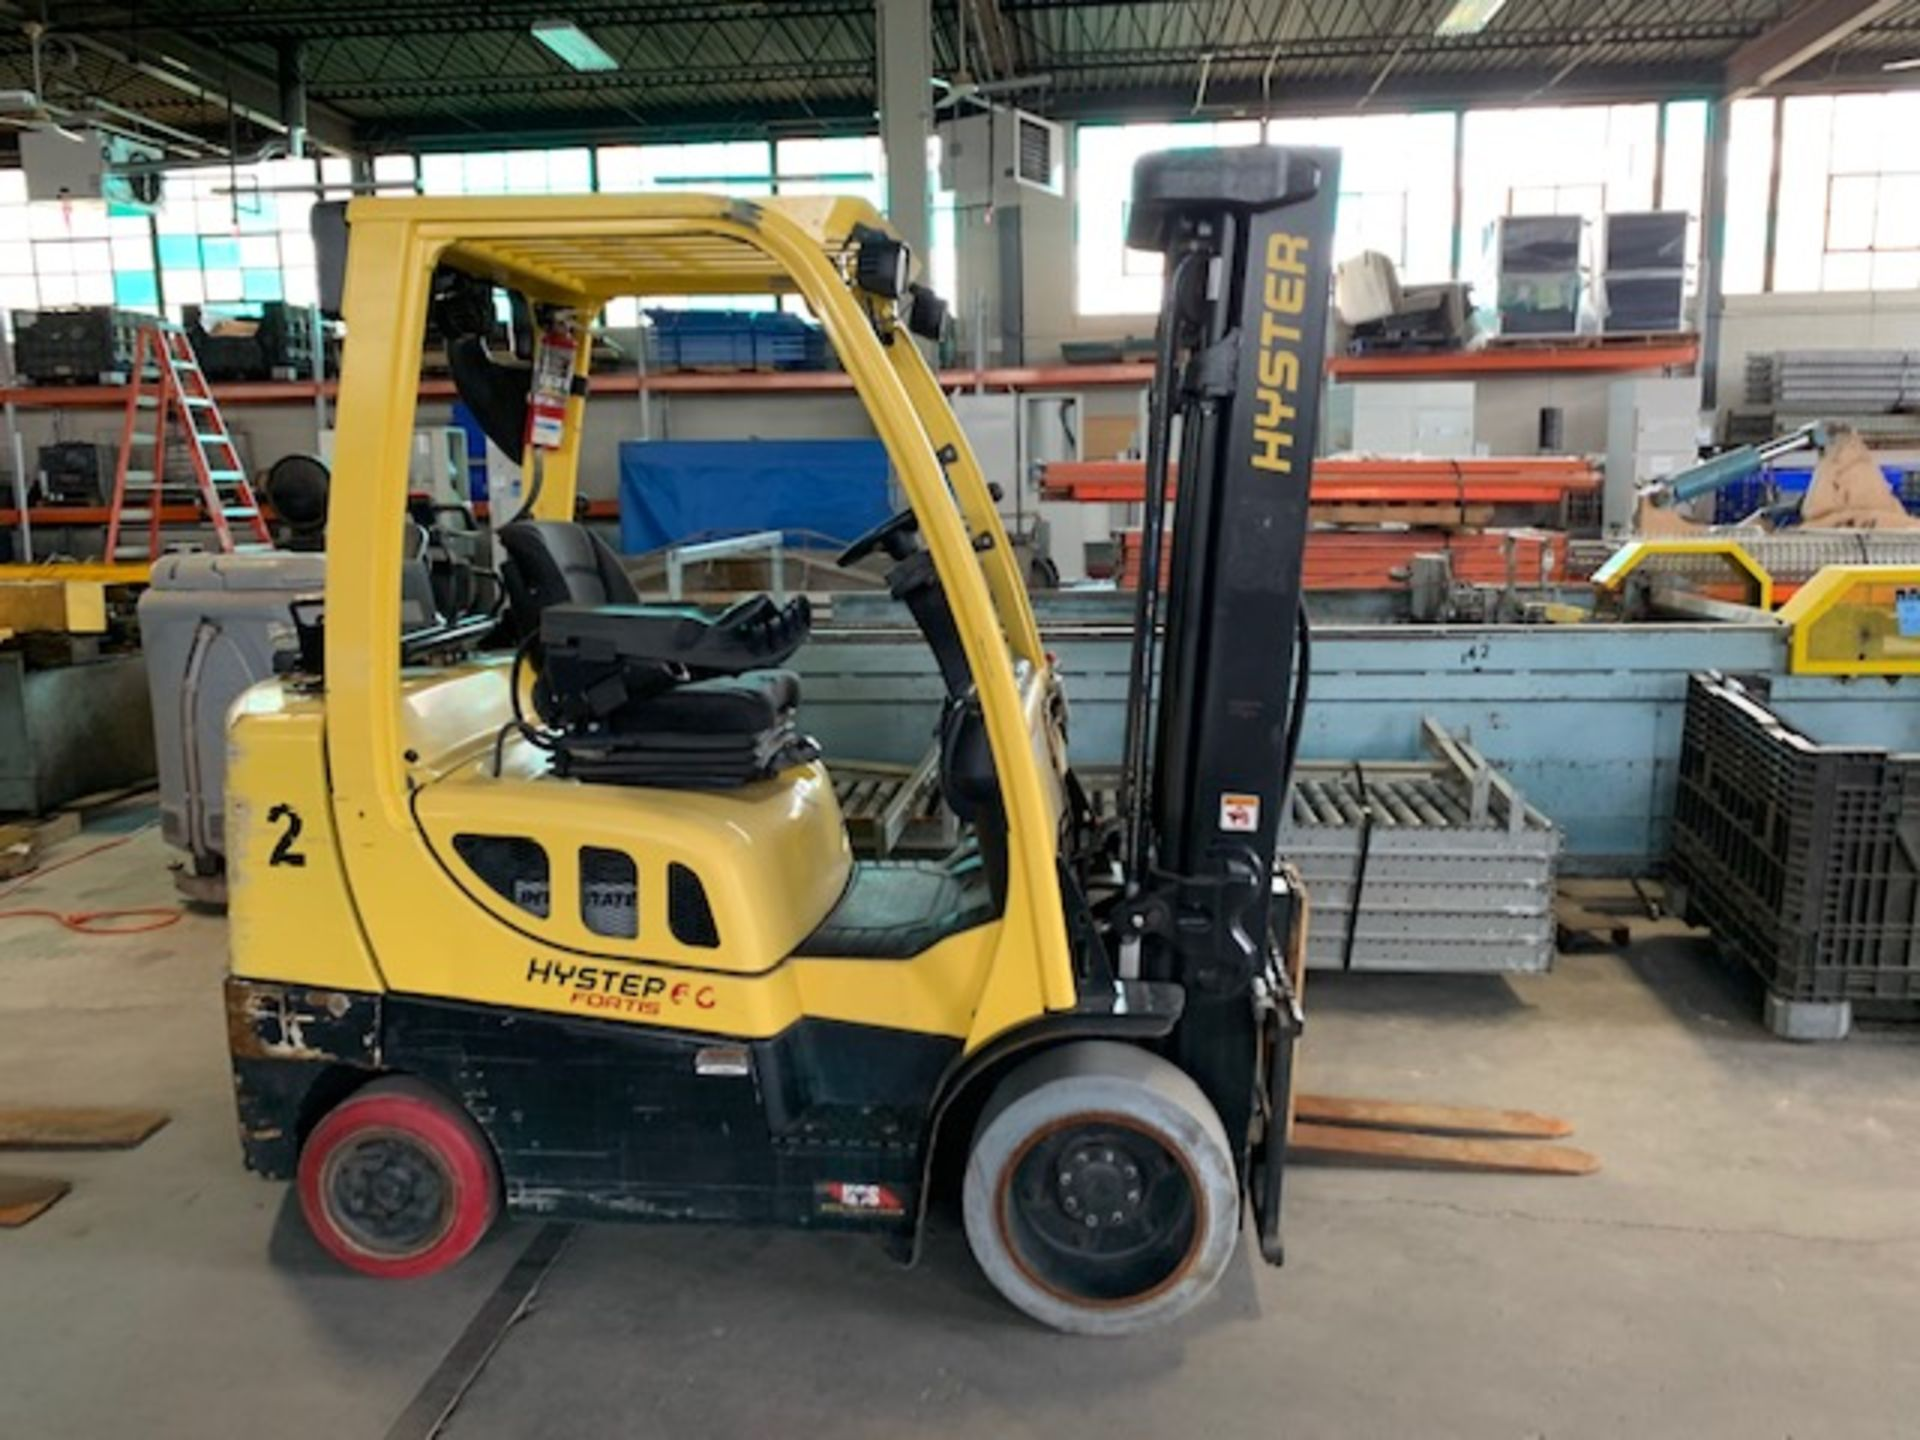 5,000 LB. HYSTER MODEL S50FT LP GAS CUSHION TIRE LIFT TRUCK; S/N F187V25799M - Image 2 of 10